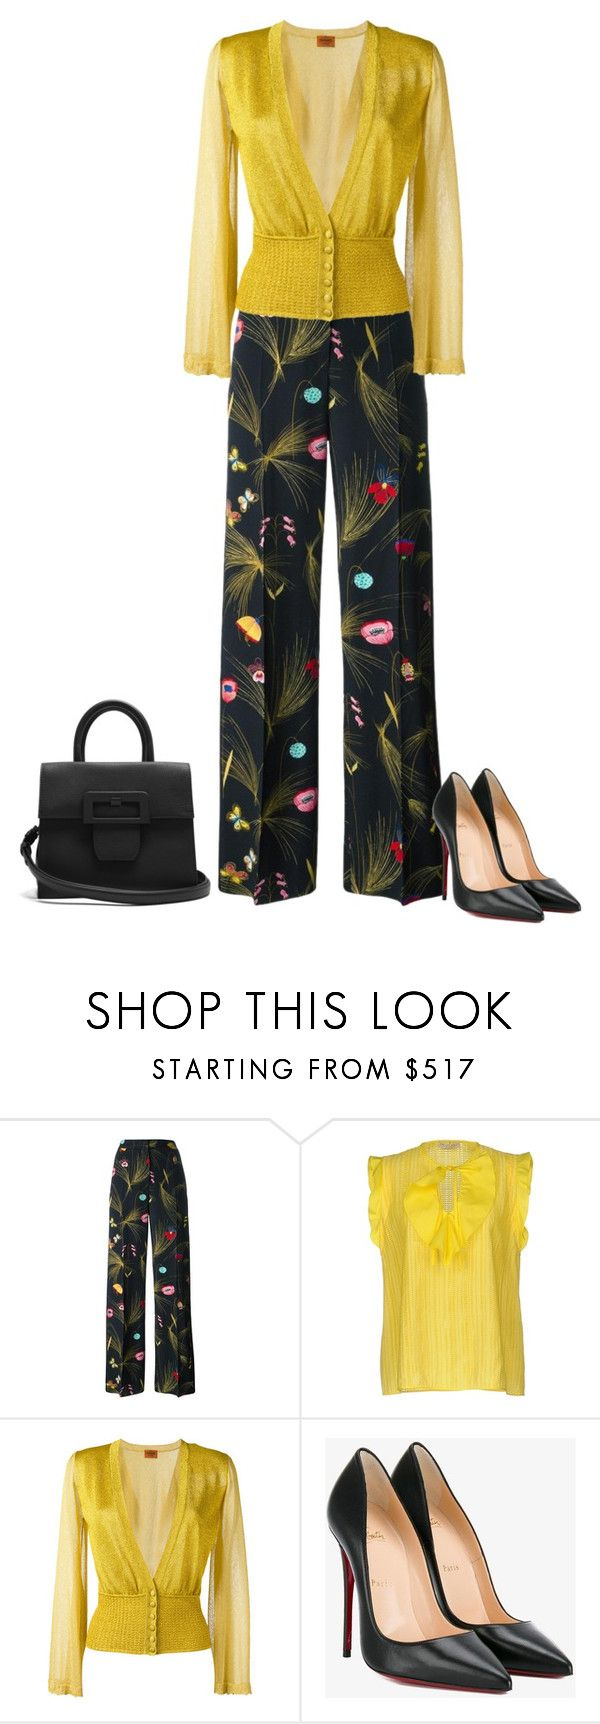 """Untitled #5981"" by lovetodrinktea ❤ liked on Polyvore featuring Fendi, Emilio Pucci, Missoni, Christian Louboutin and Maison Margiela"